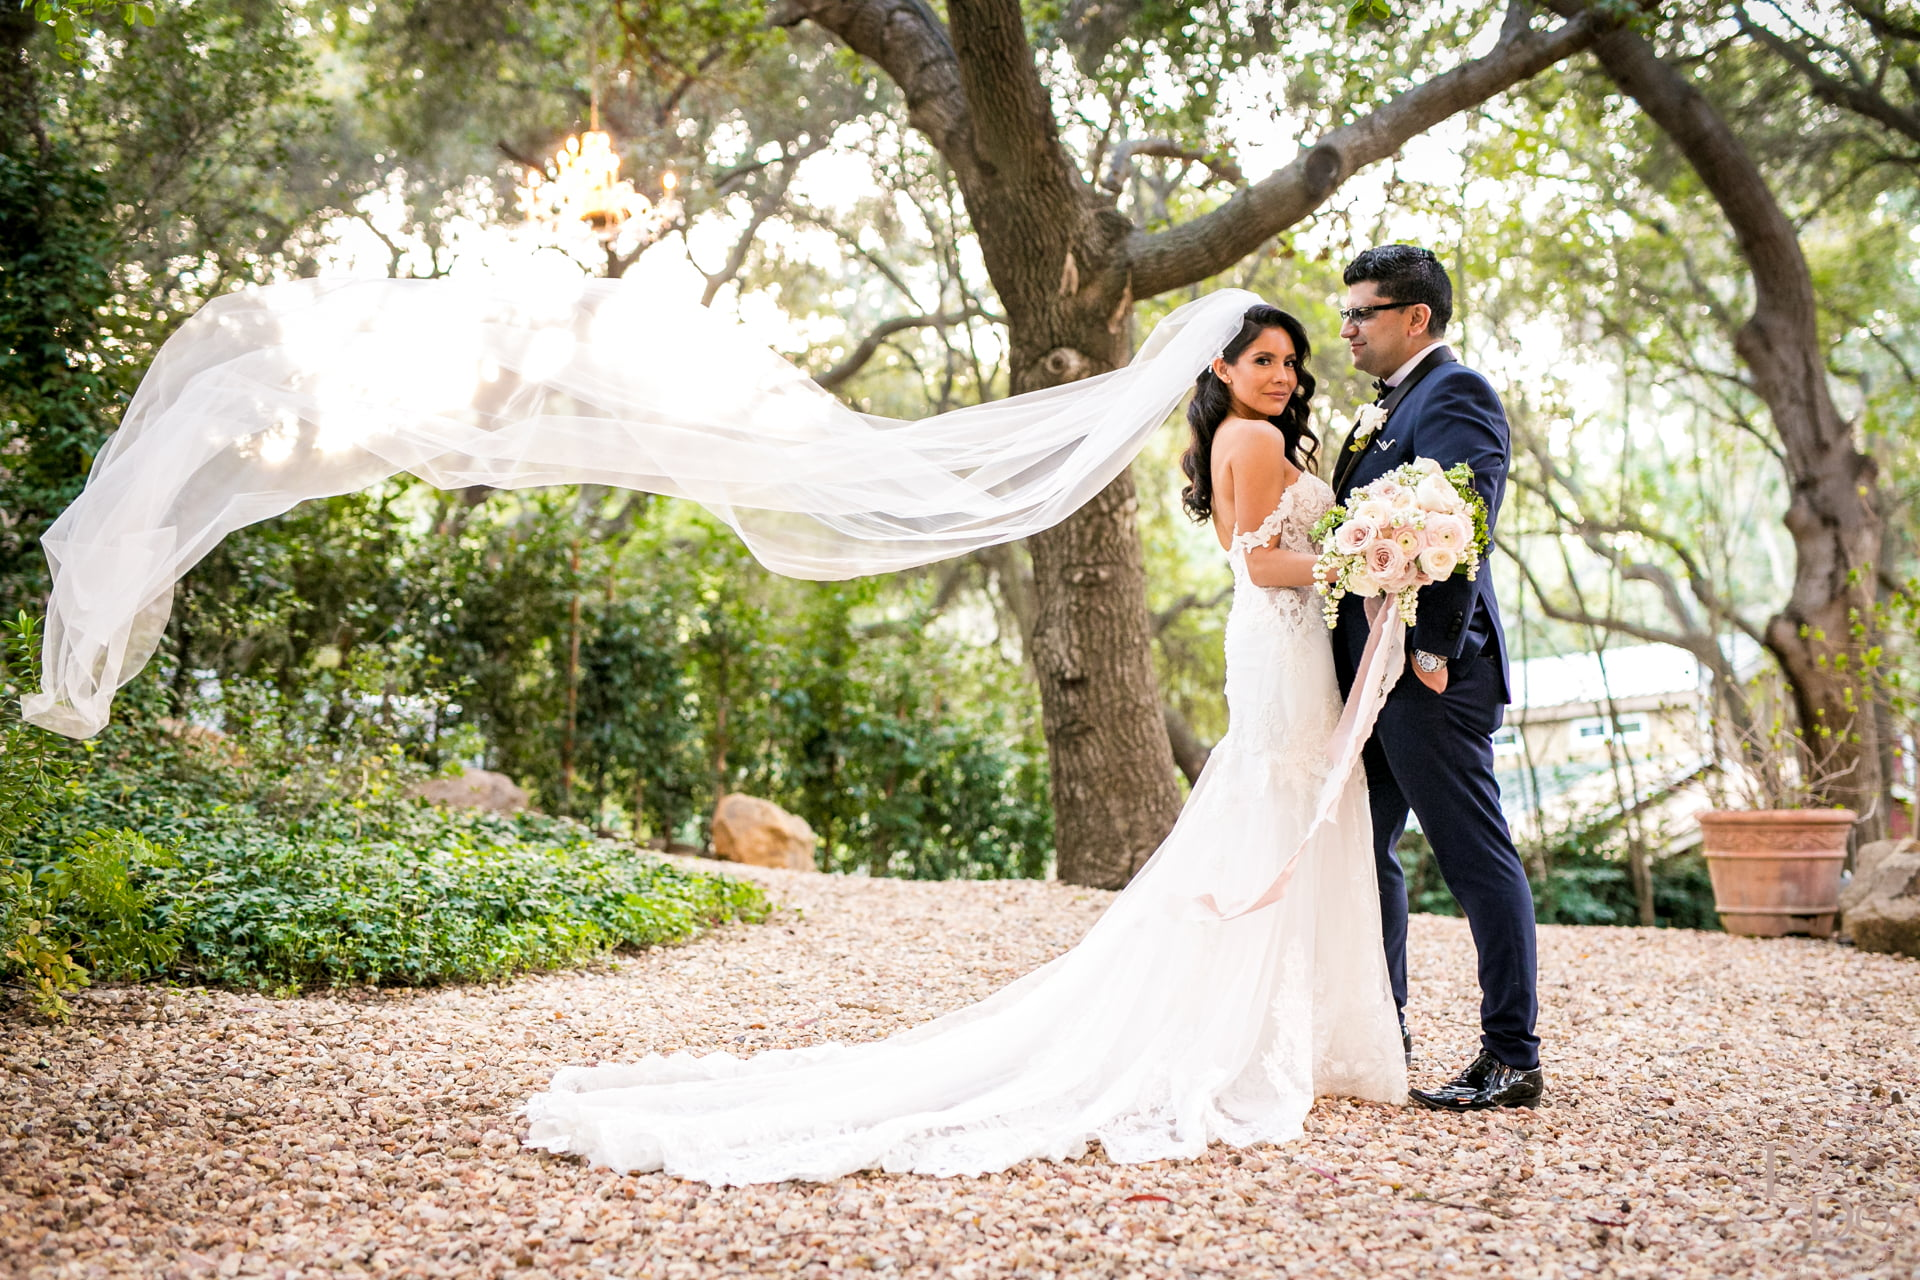 Calamigos Ranch, the Oaks Room – Wedding Photography and Videography